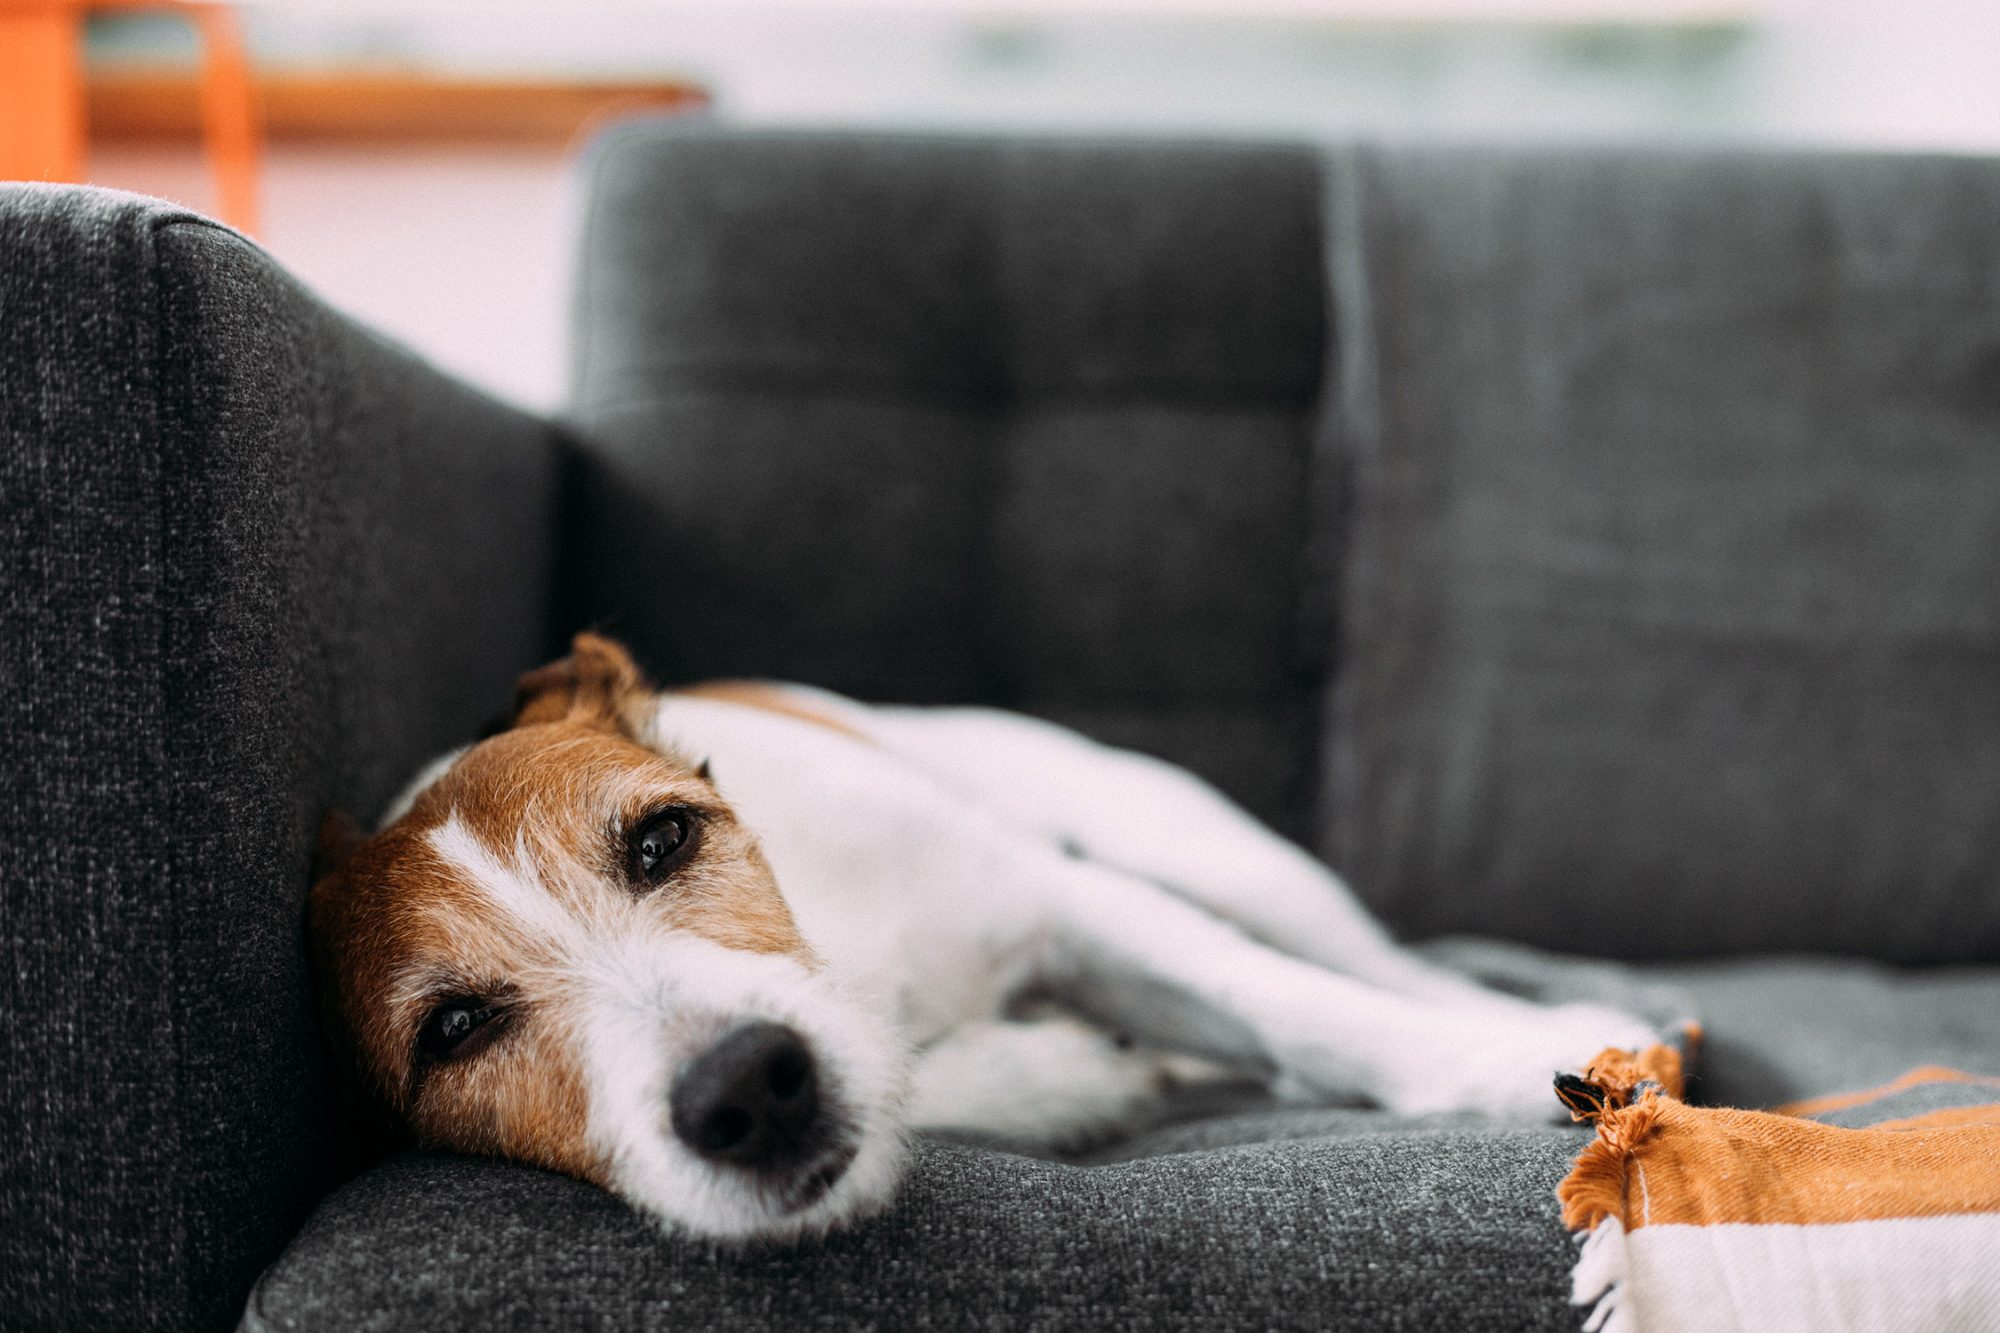 parson or jack russell terrier lying on couch